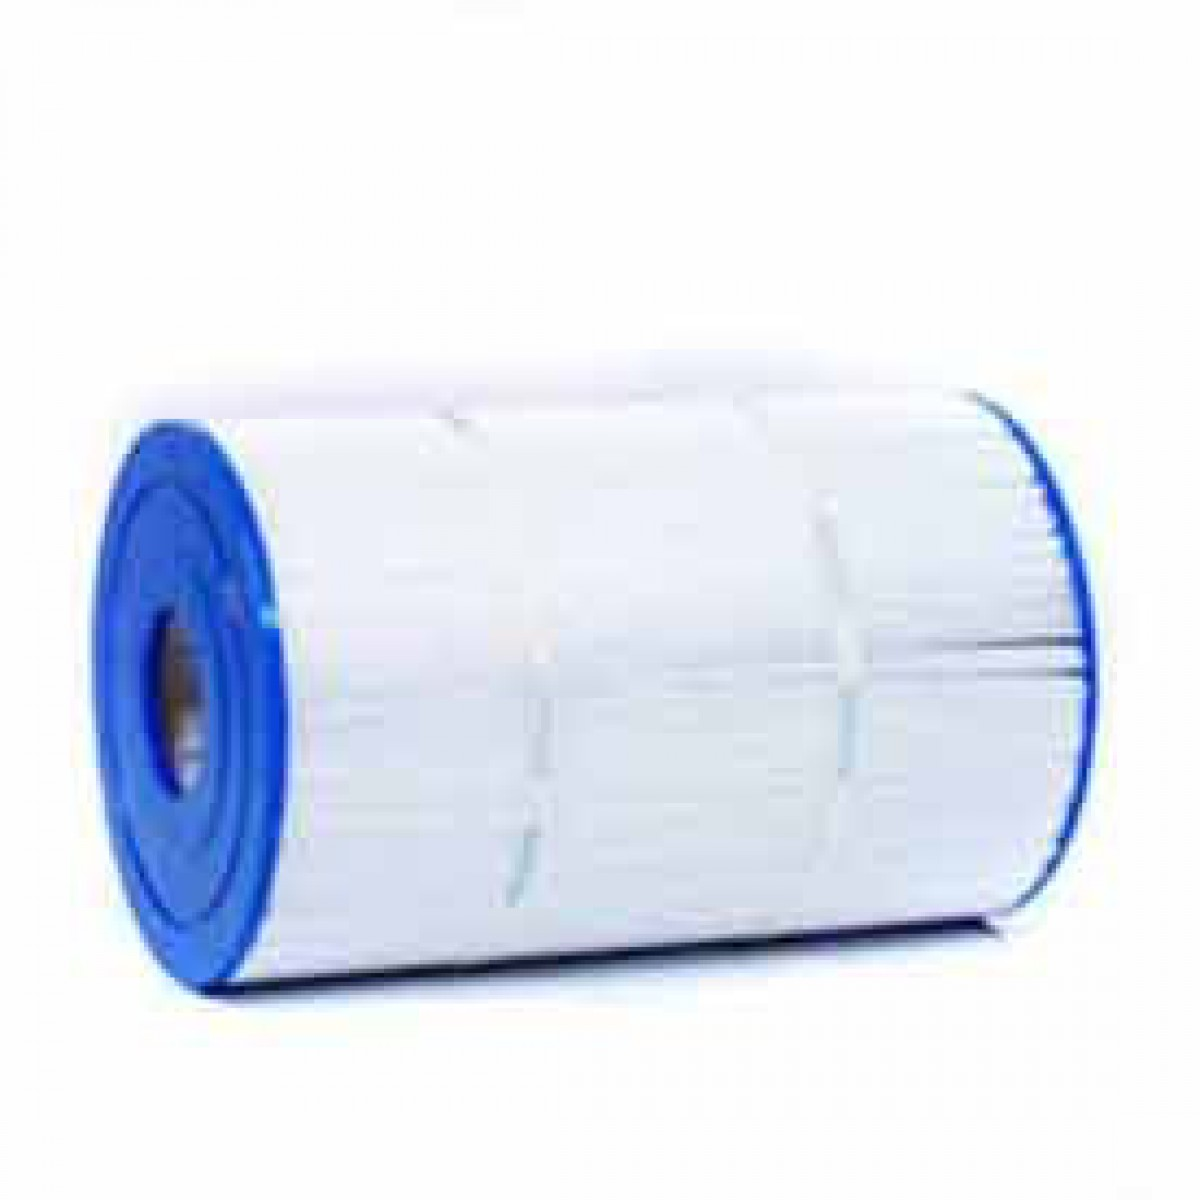 Jacuzzi Replacement Pool Filter Cartridge Pleatco Pa85 4 Replacement Pool And Spa Filter